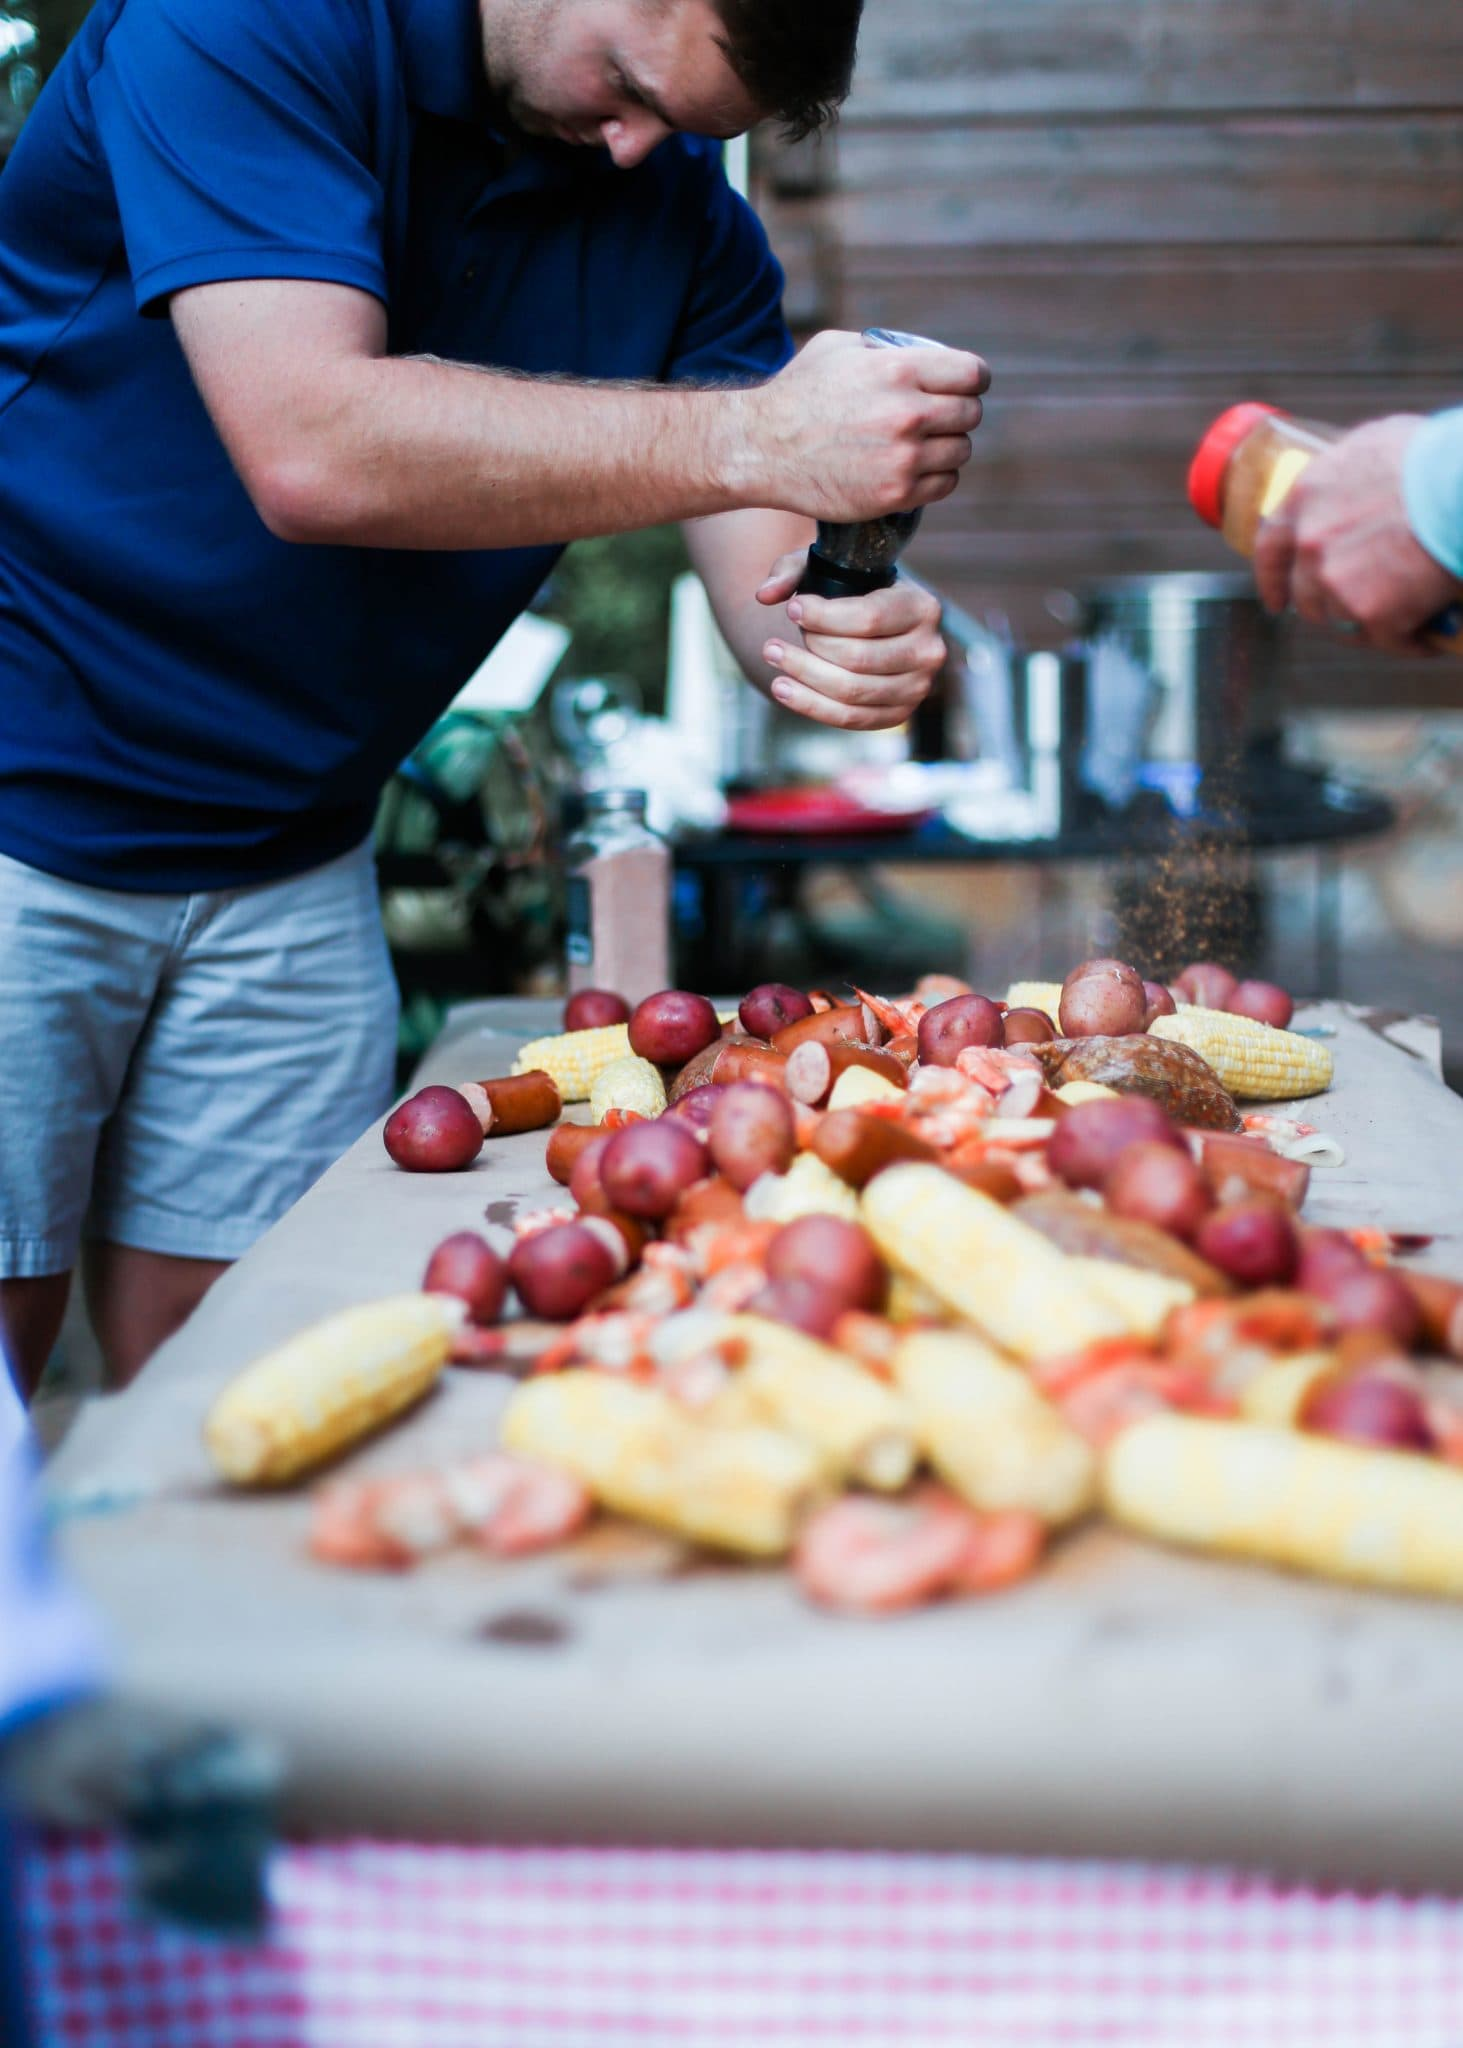 ow country boil recipe and instructions, lowcountry boil, pretty in the pines blog